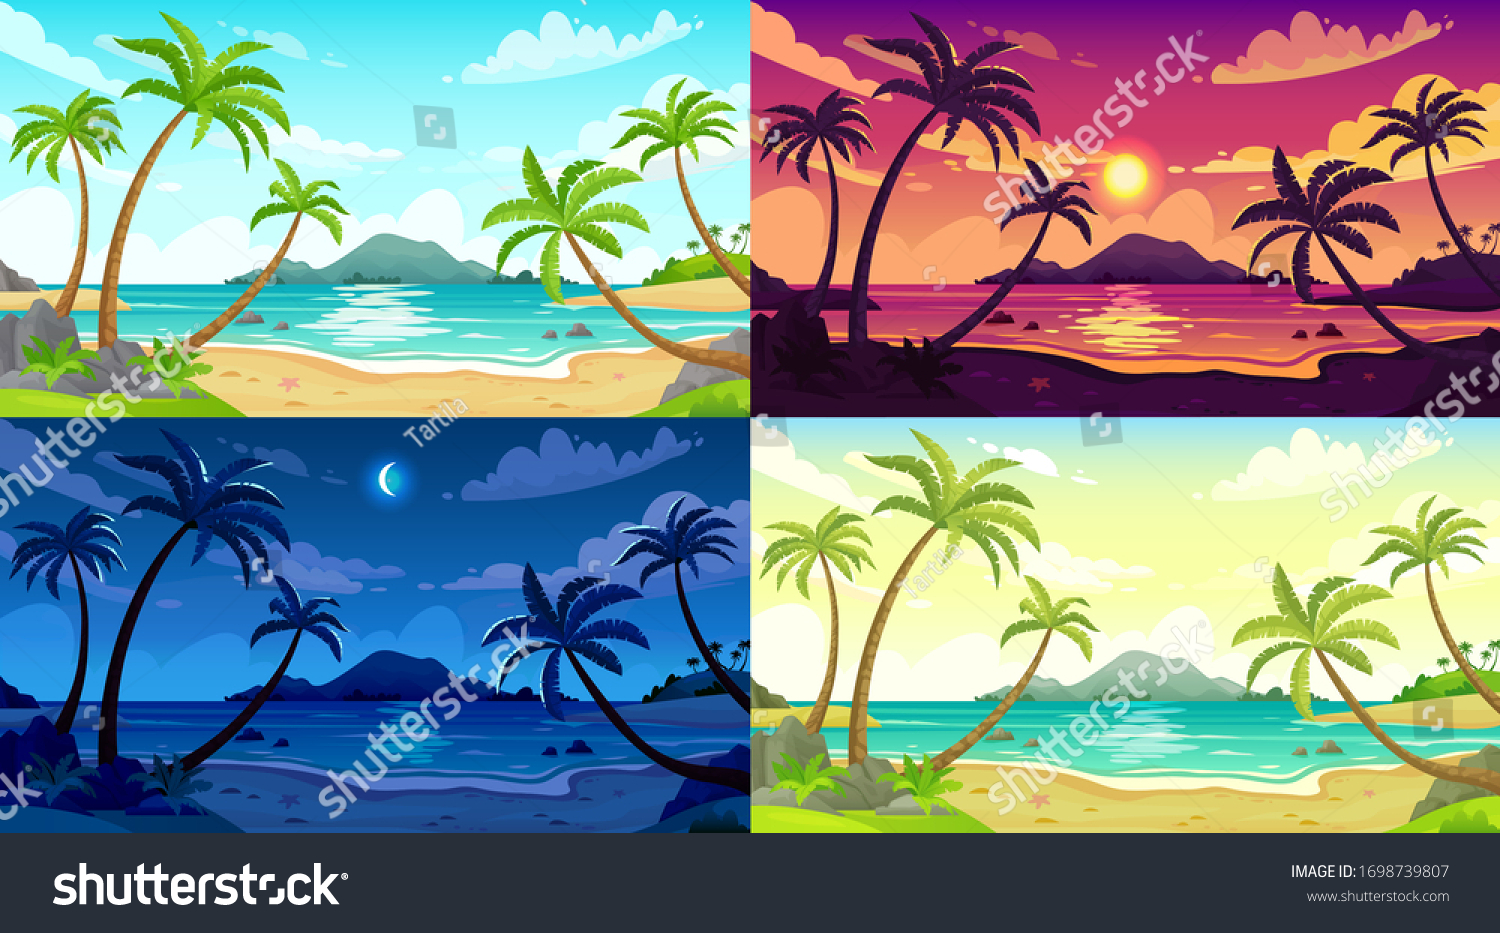 Daytime Beach Landscape Sunny Day Seascape Stock Vector Royalty Free 1698739807